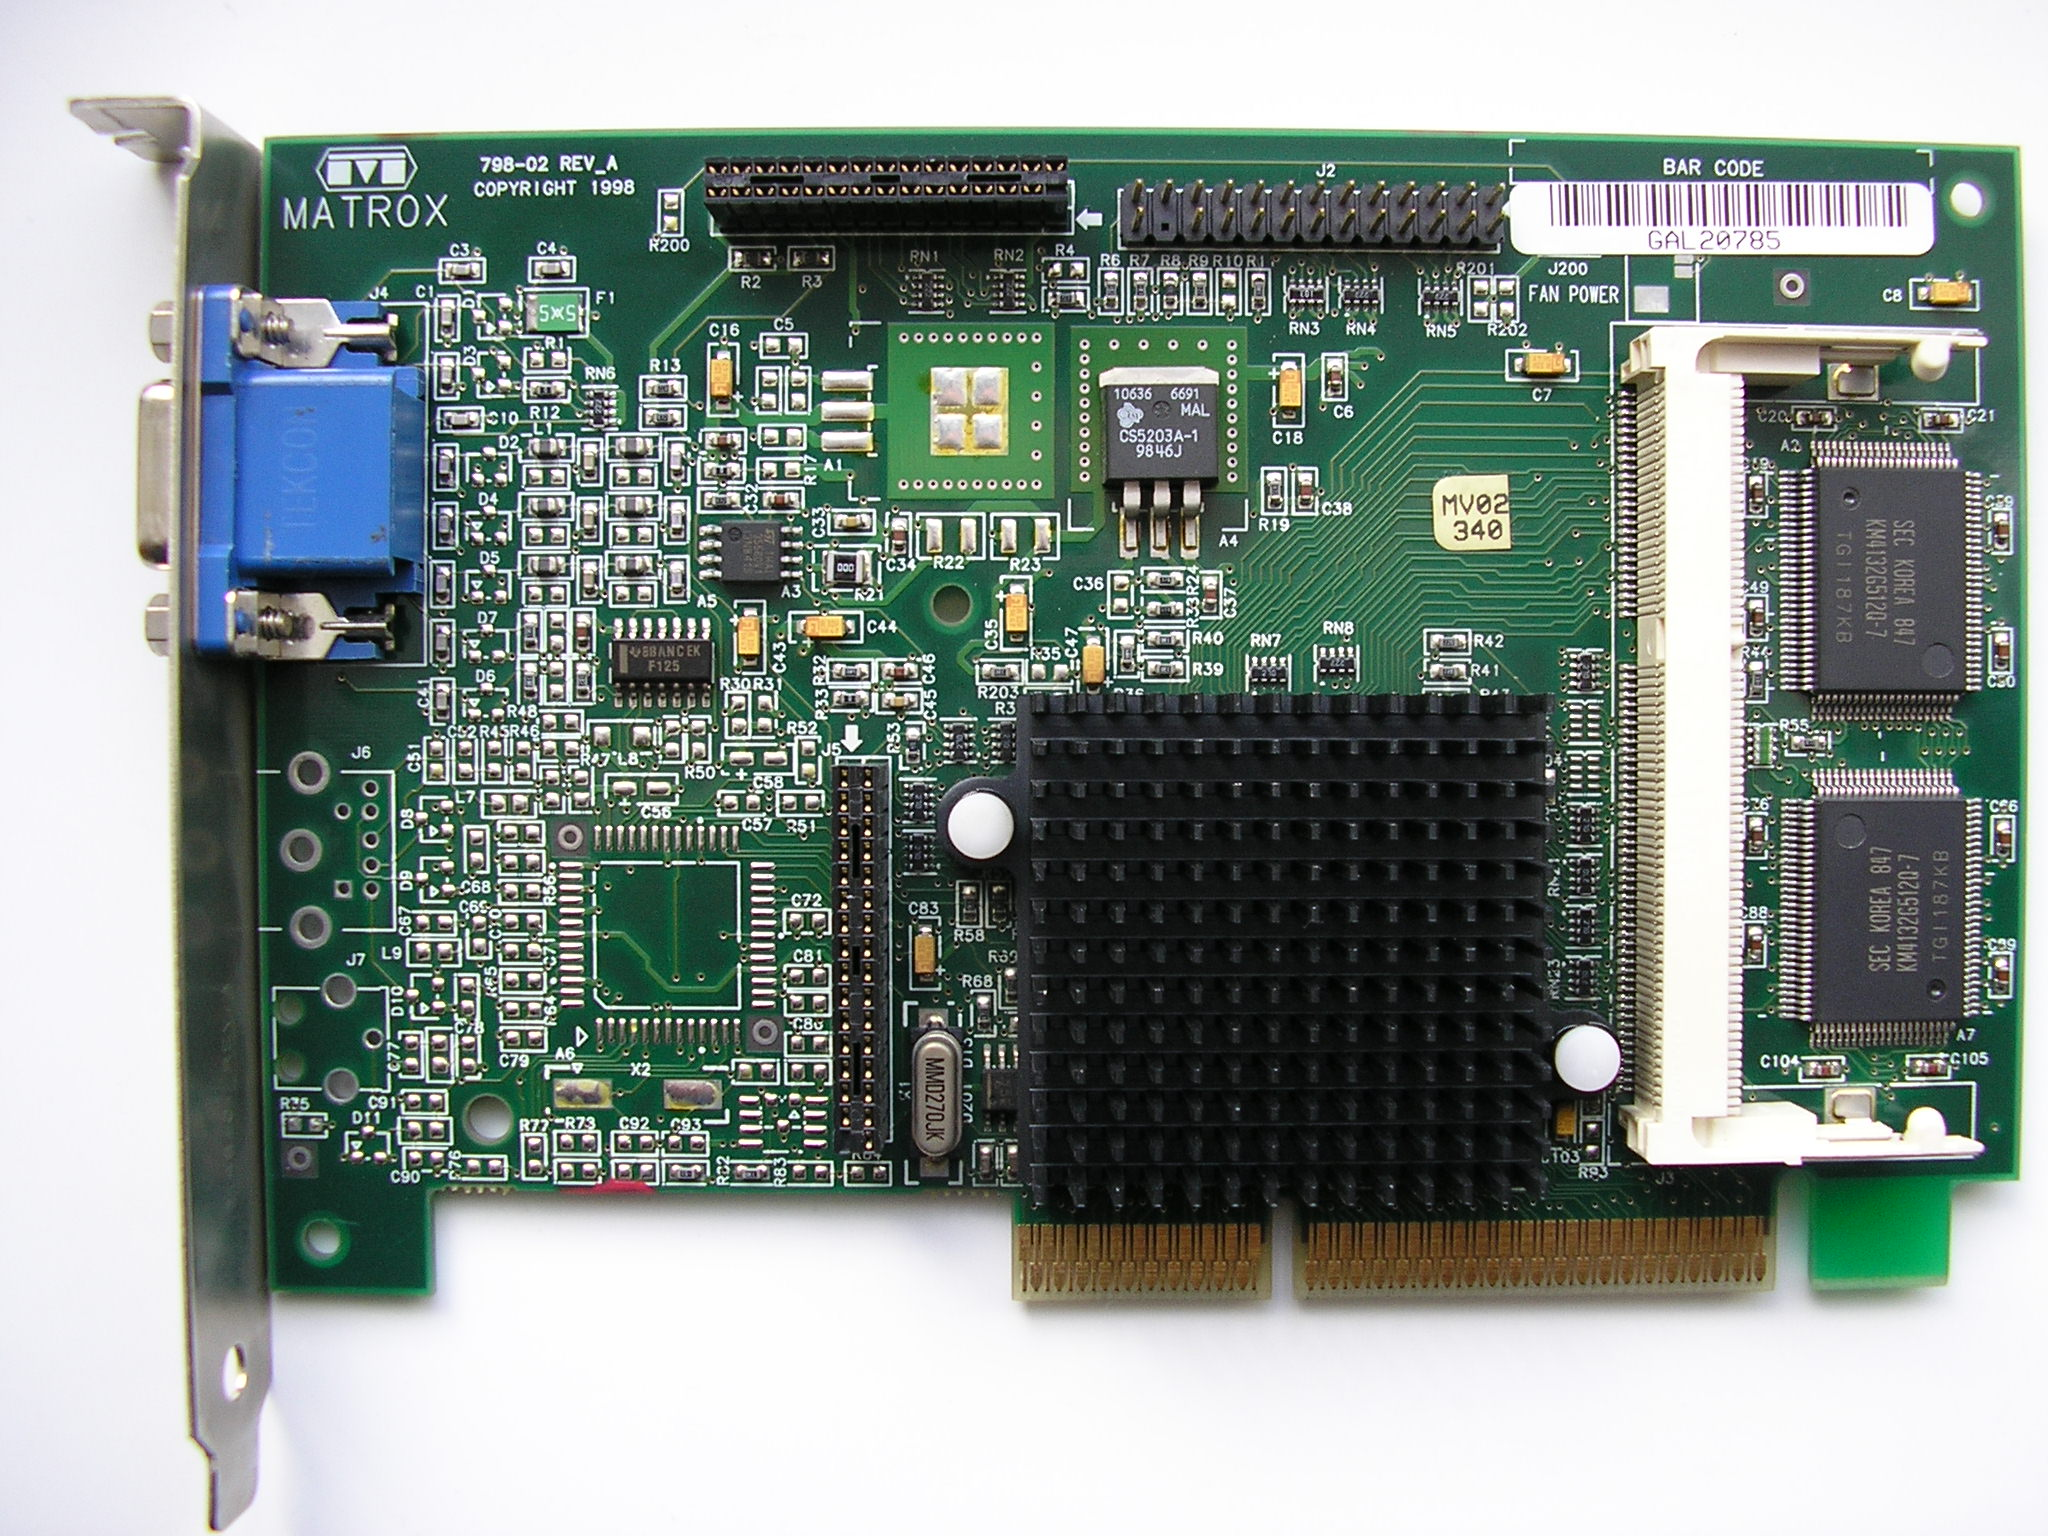 MATROX GRAPHICS MILLENIUM PCI WINDOWS 8 DRIVERS DOWNLOAD